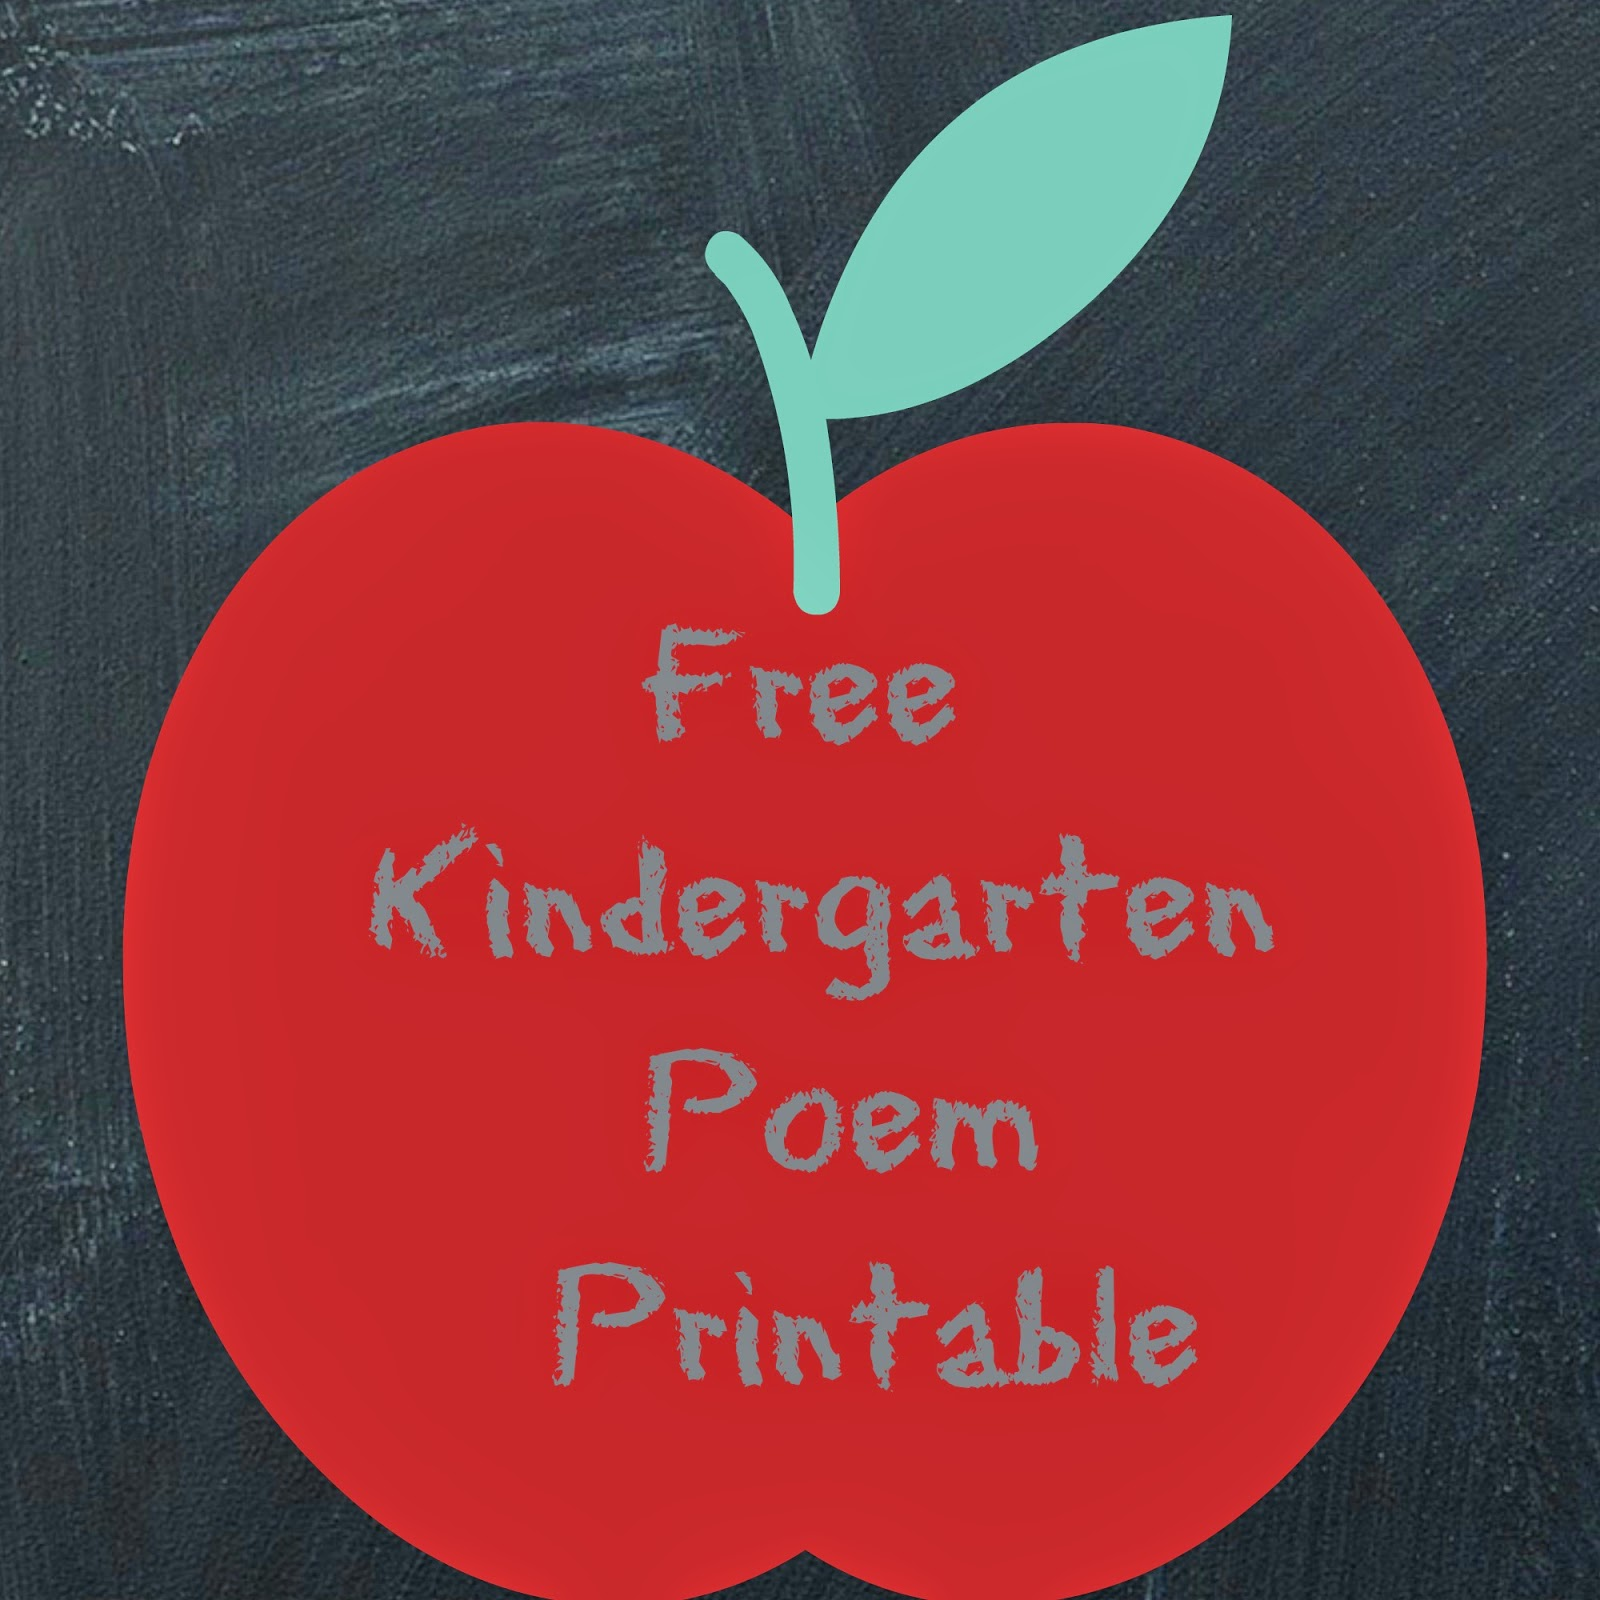 http://b-is4.blogspot.com/2014/05/brodys-kindergarten-poem-printable.html